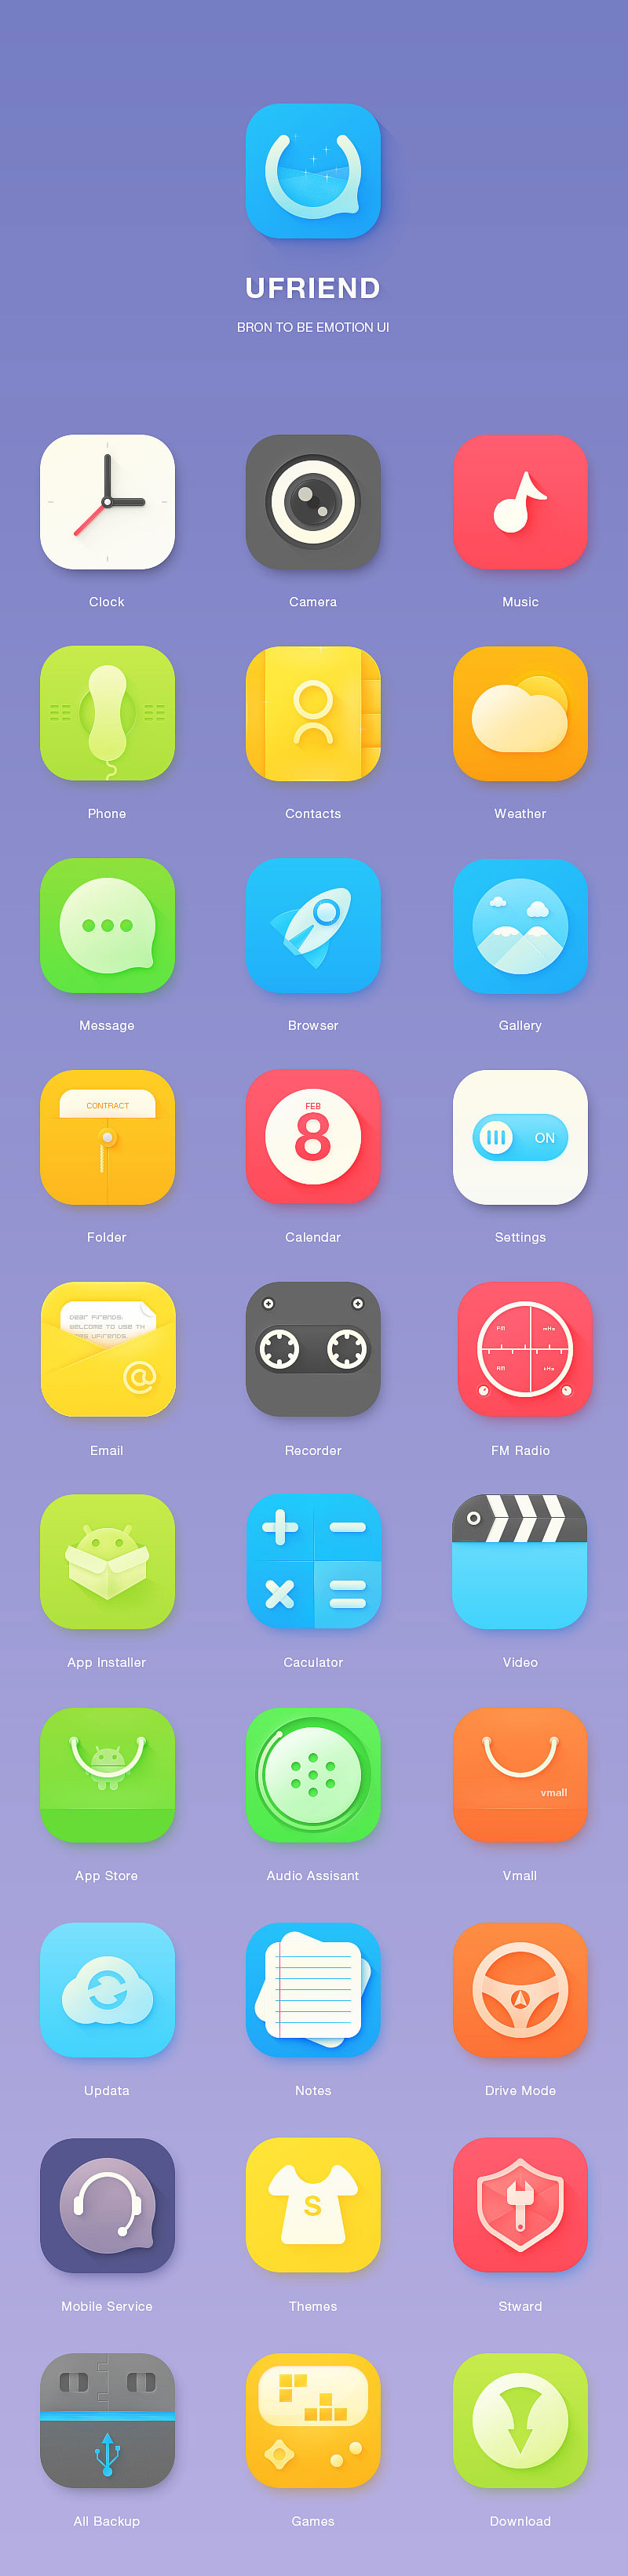 A very beautiful and comfortable APP theme icon interface design 2